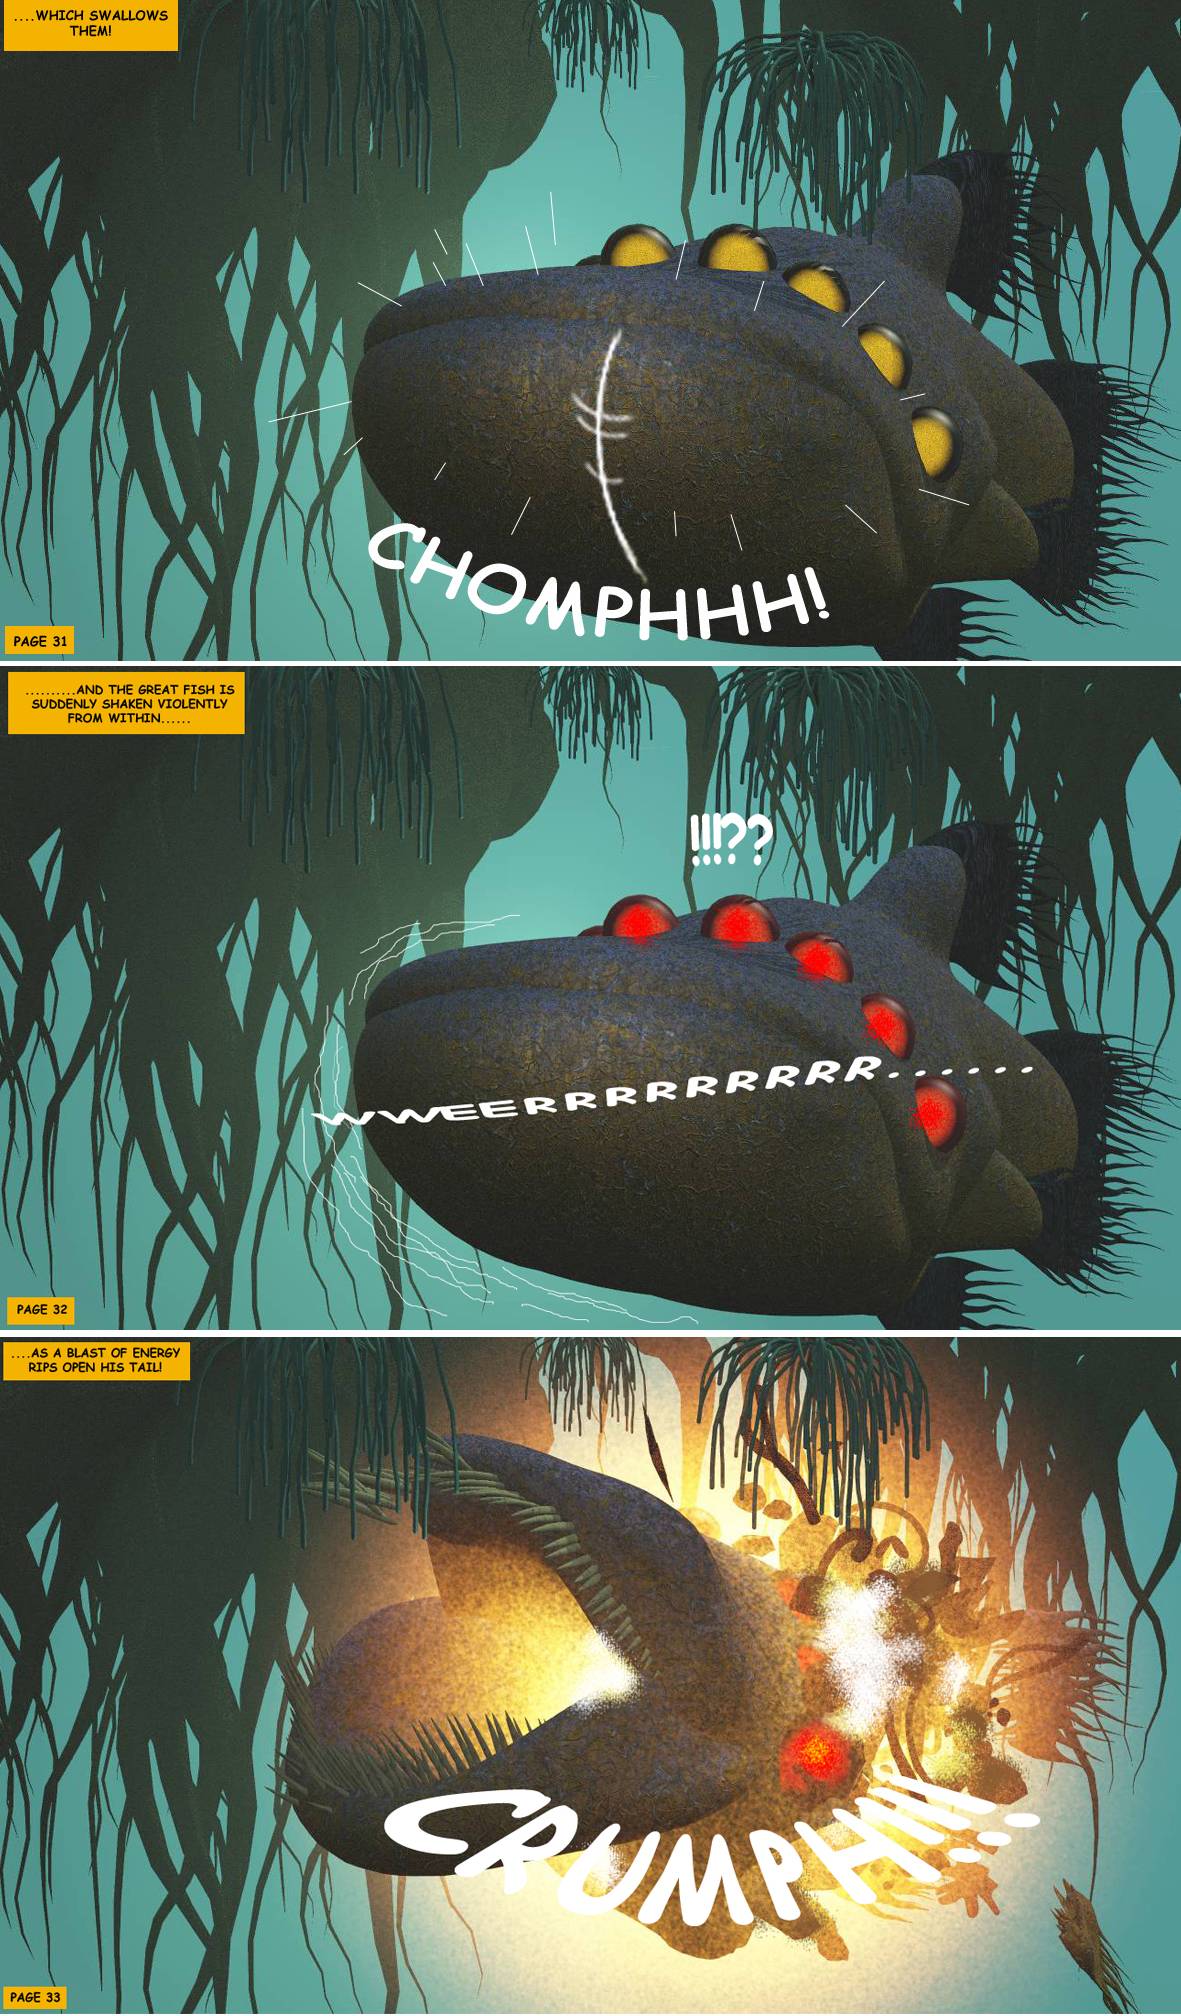 STORM OVER WHOOMERA: PAGE 25